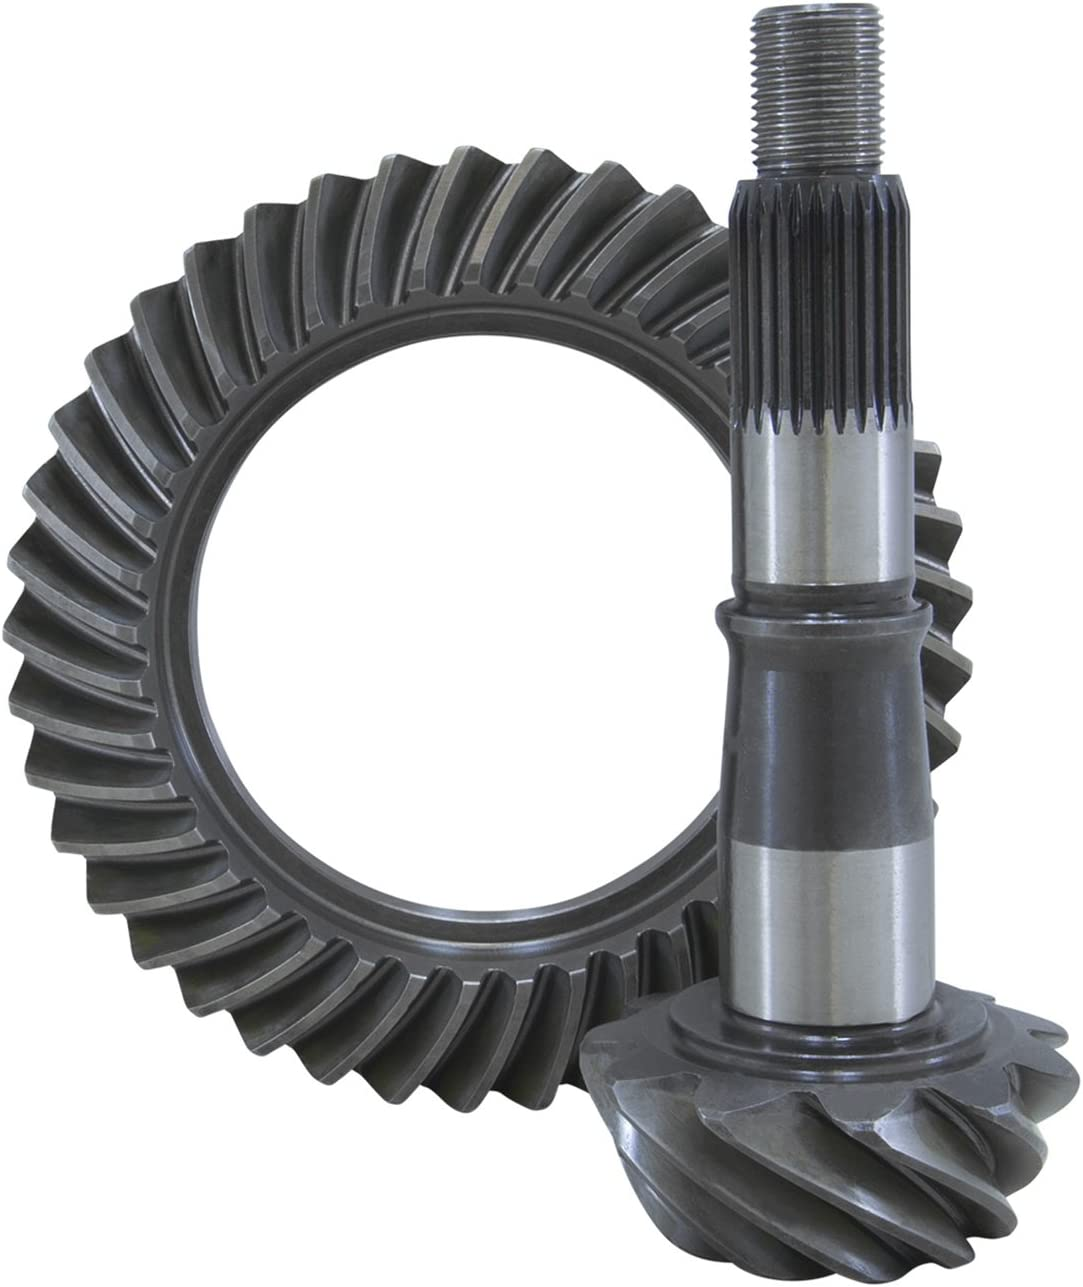 YG GM7.5-308 Yukon High Performance Ring and Pinion Gear Set for GM 7.5 Differential